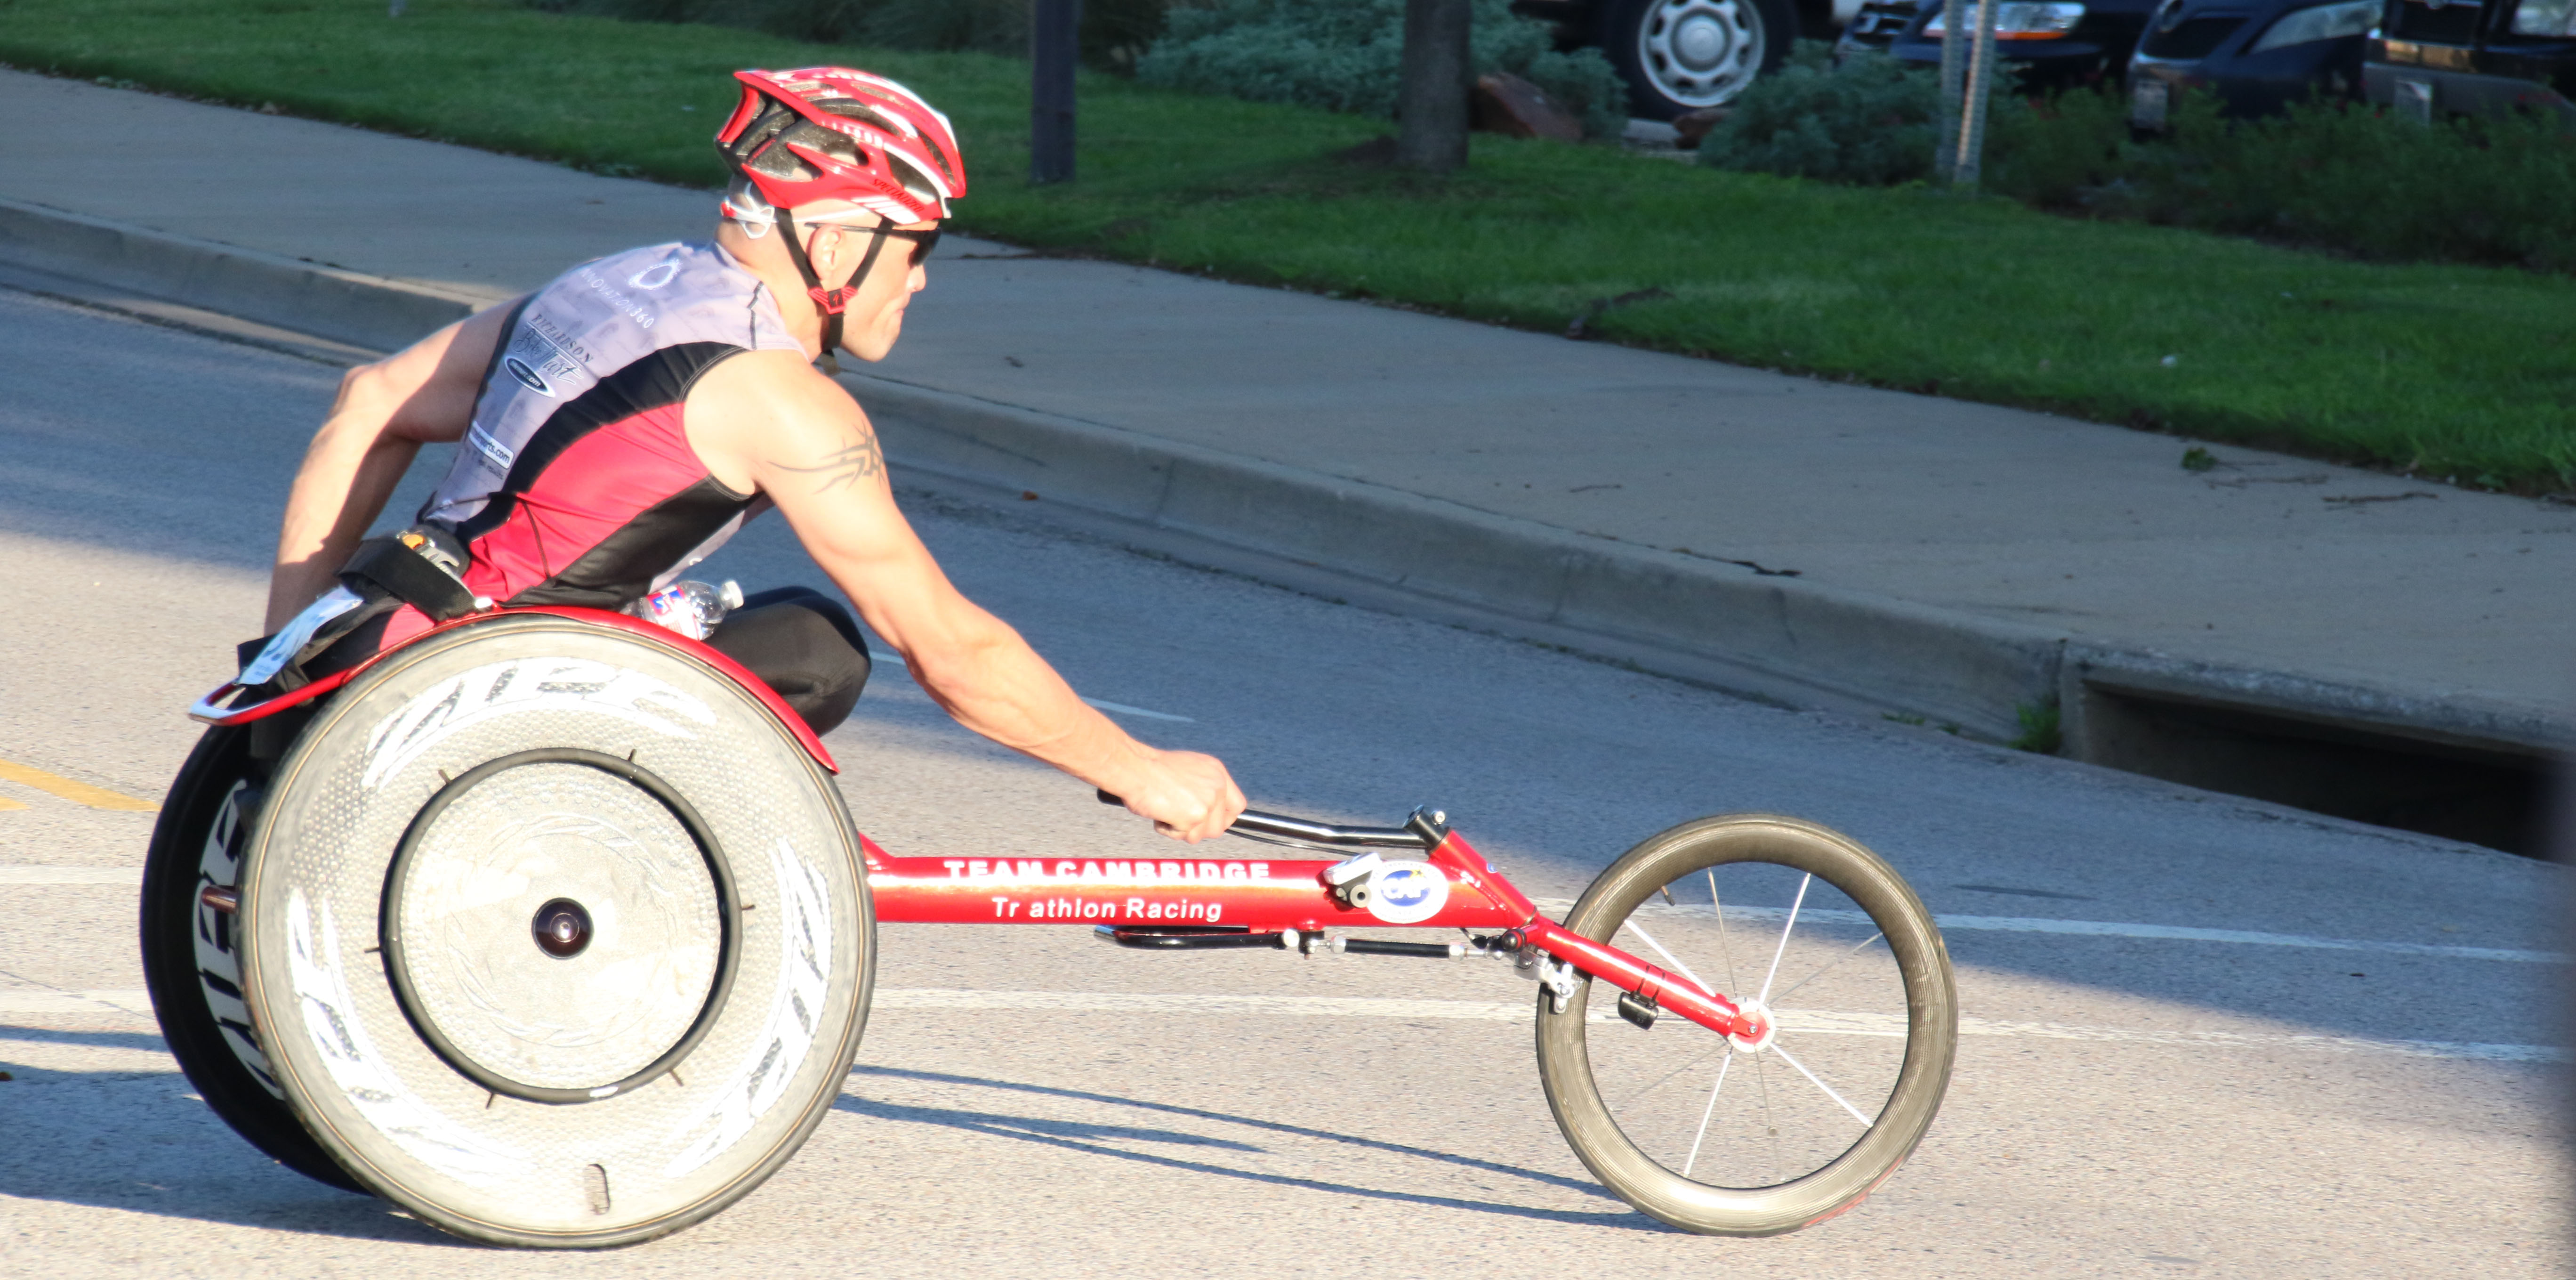 Lone Star Race - adaptive/wheelchair athlete